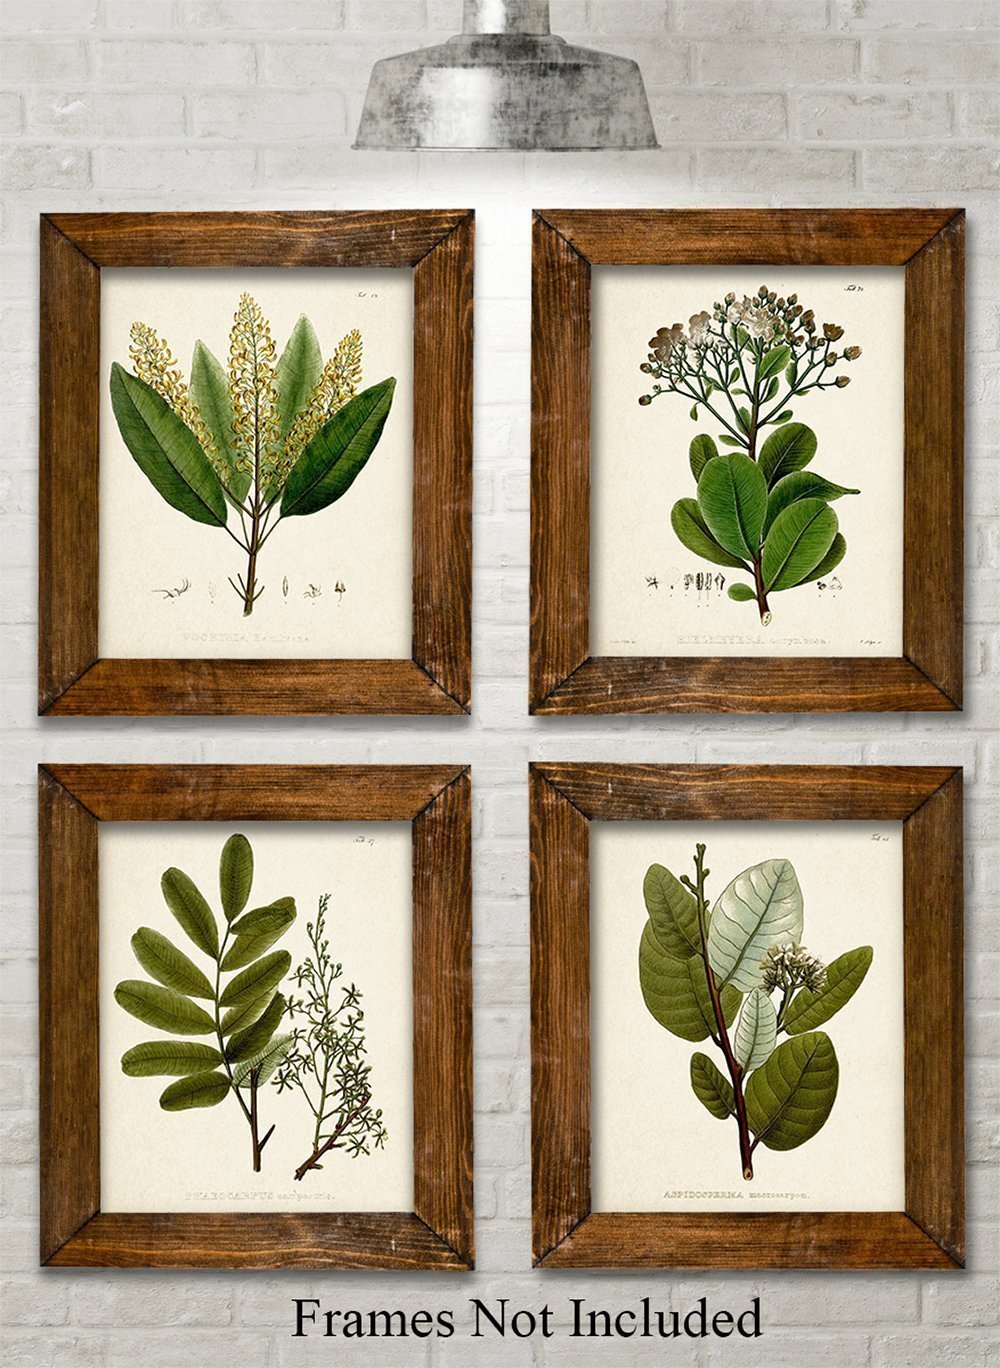 Green Botanical Art Prints - Set of Four Prints (8x10) Unframed - Great Kitchen Decor and Gift for Nature Lovers by Personalized Signs by Lone Star Art